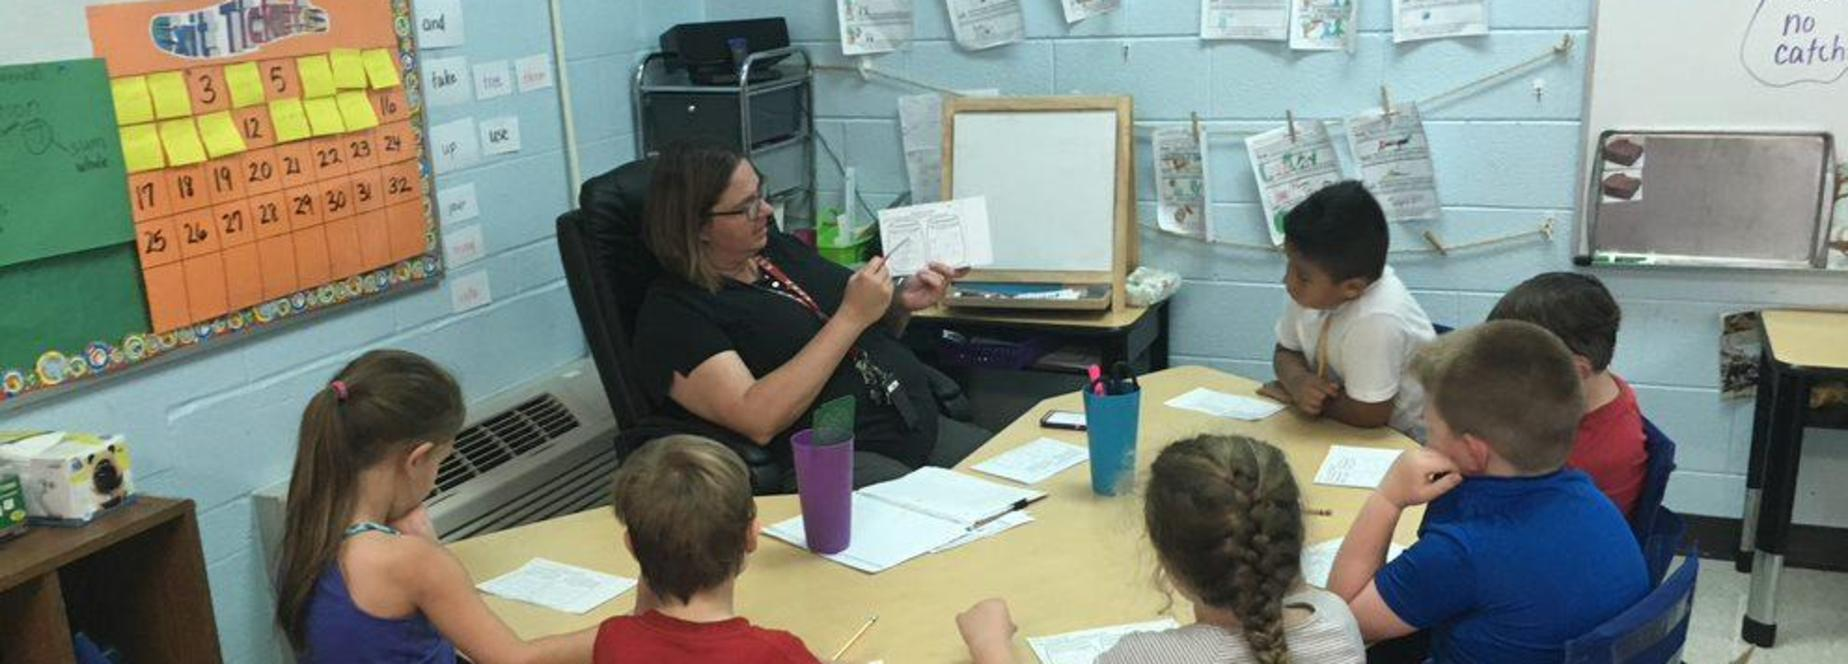 Kingston Springs Elementary School teacher Deanna Mealio instructs her students.